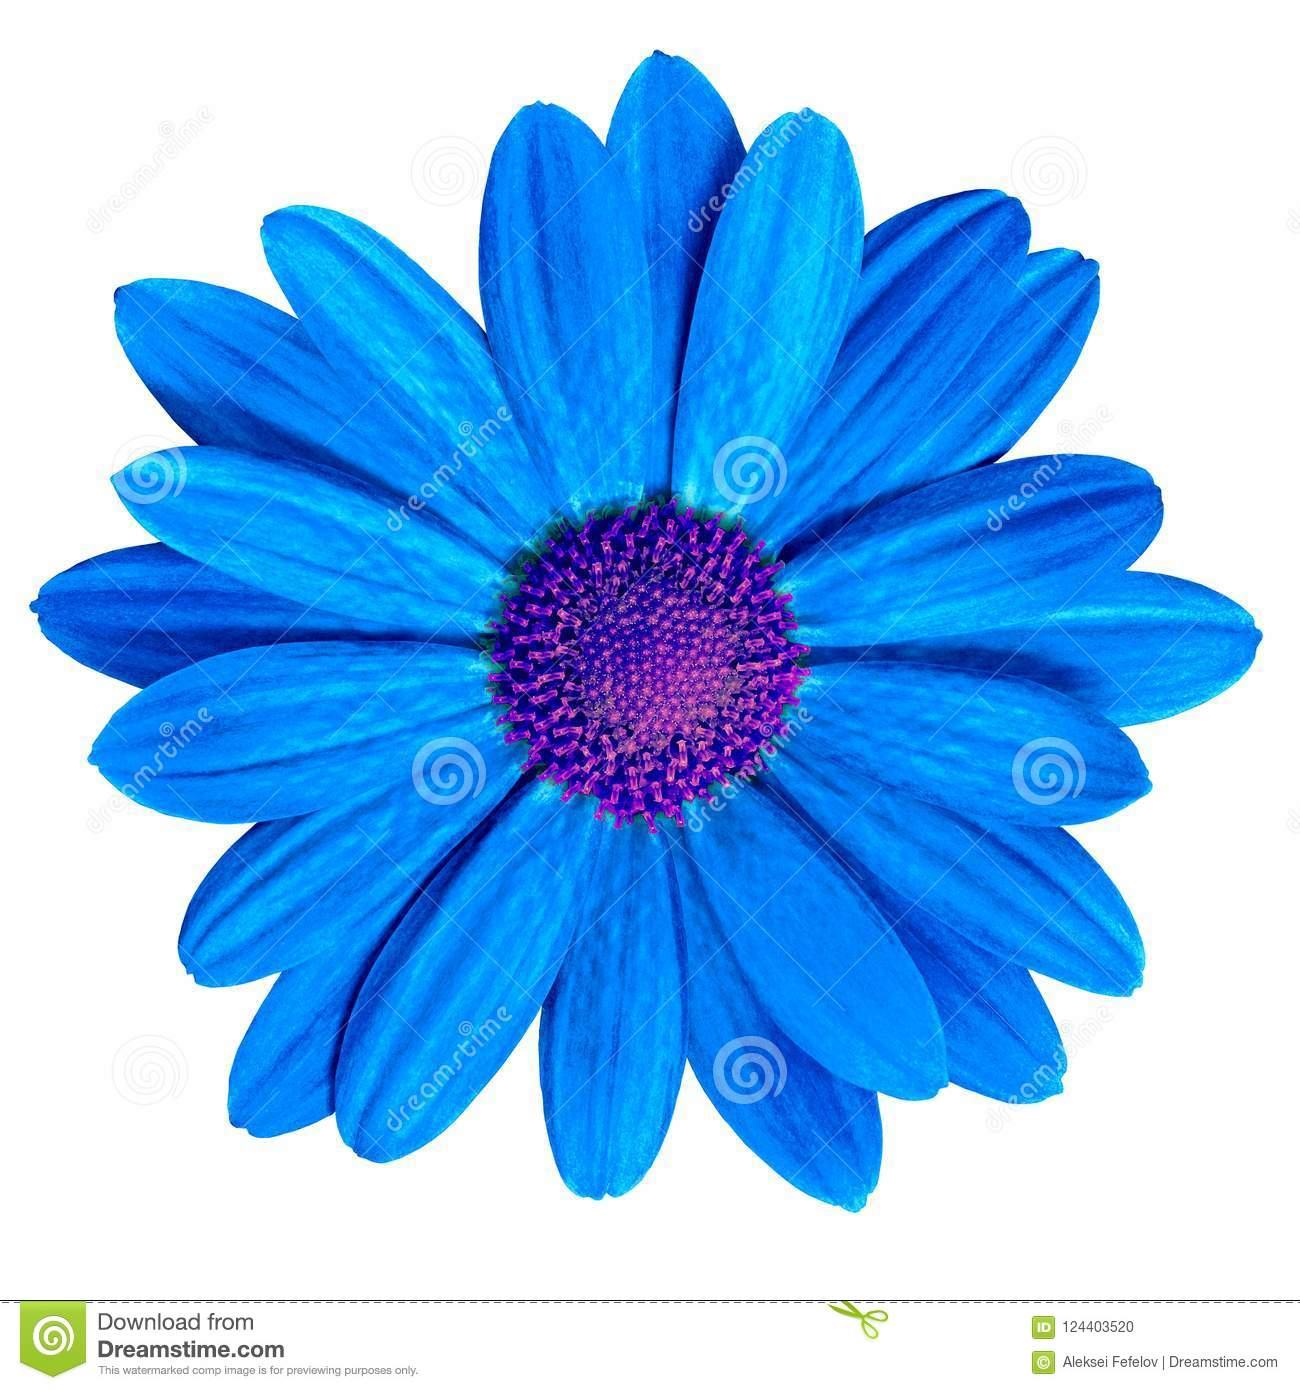 Flower royal blue purple daisy isolated on white background. Close-up.